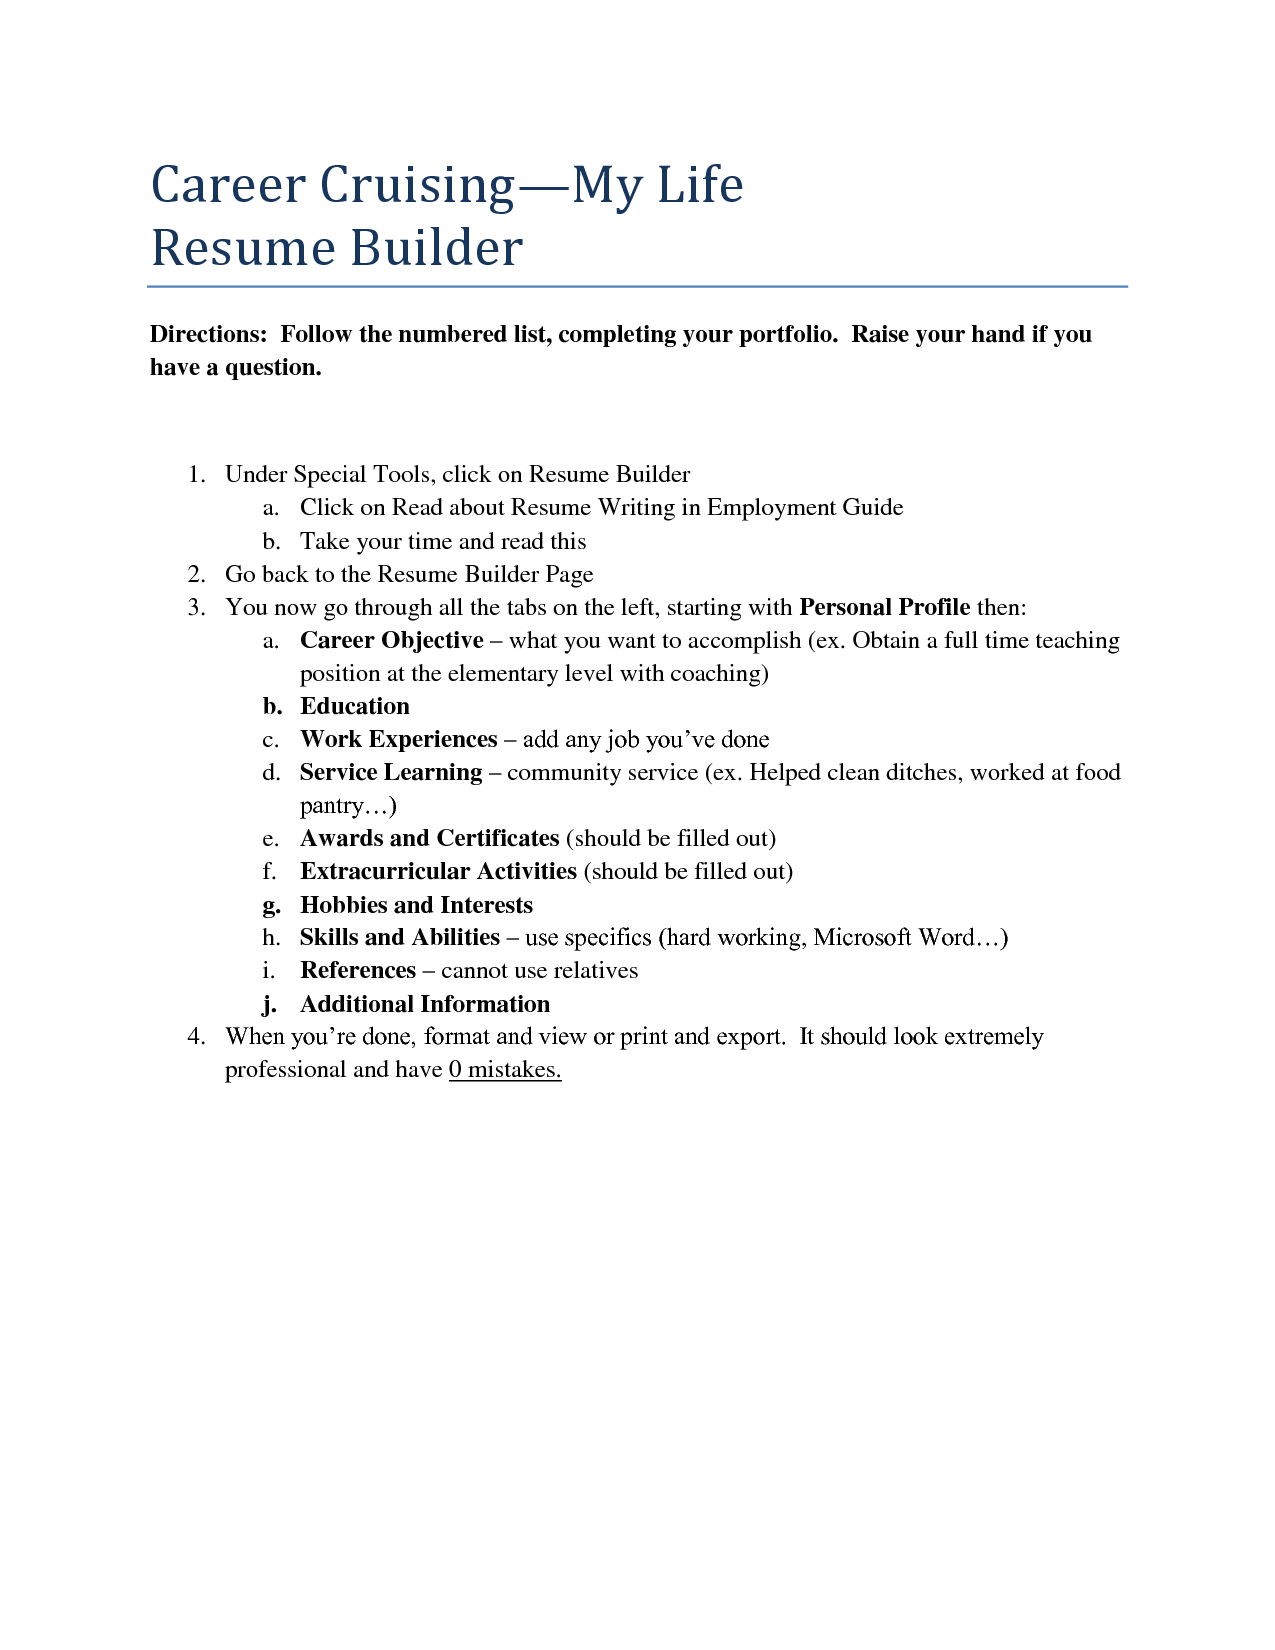 Career Builder Resume Template Career Builder Resume Samples Templates And Builders Qbdrj  Home